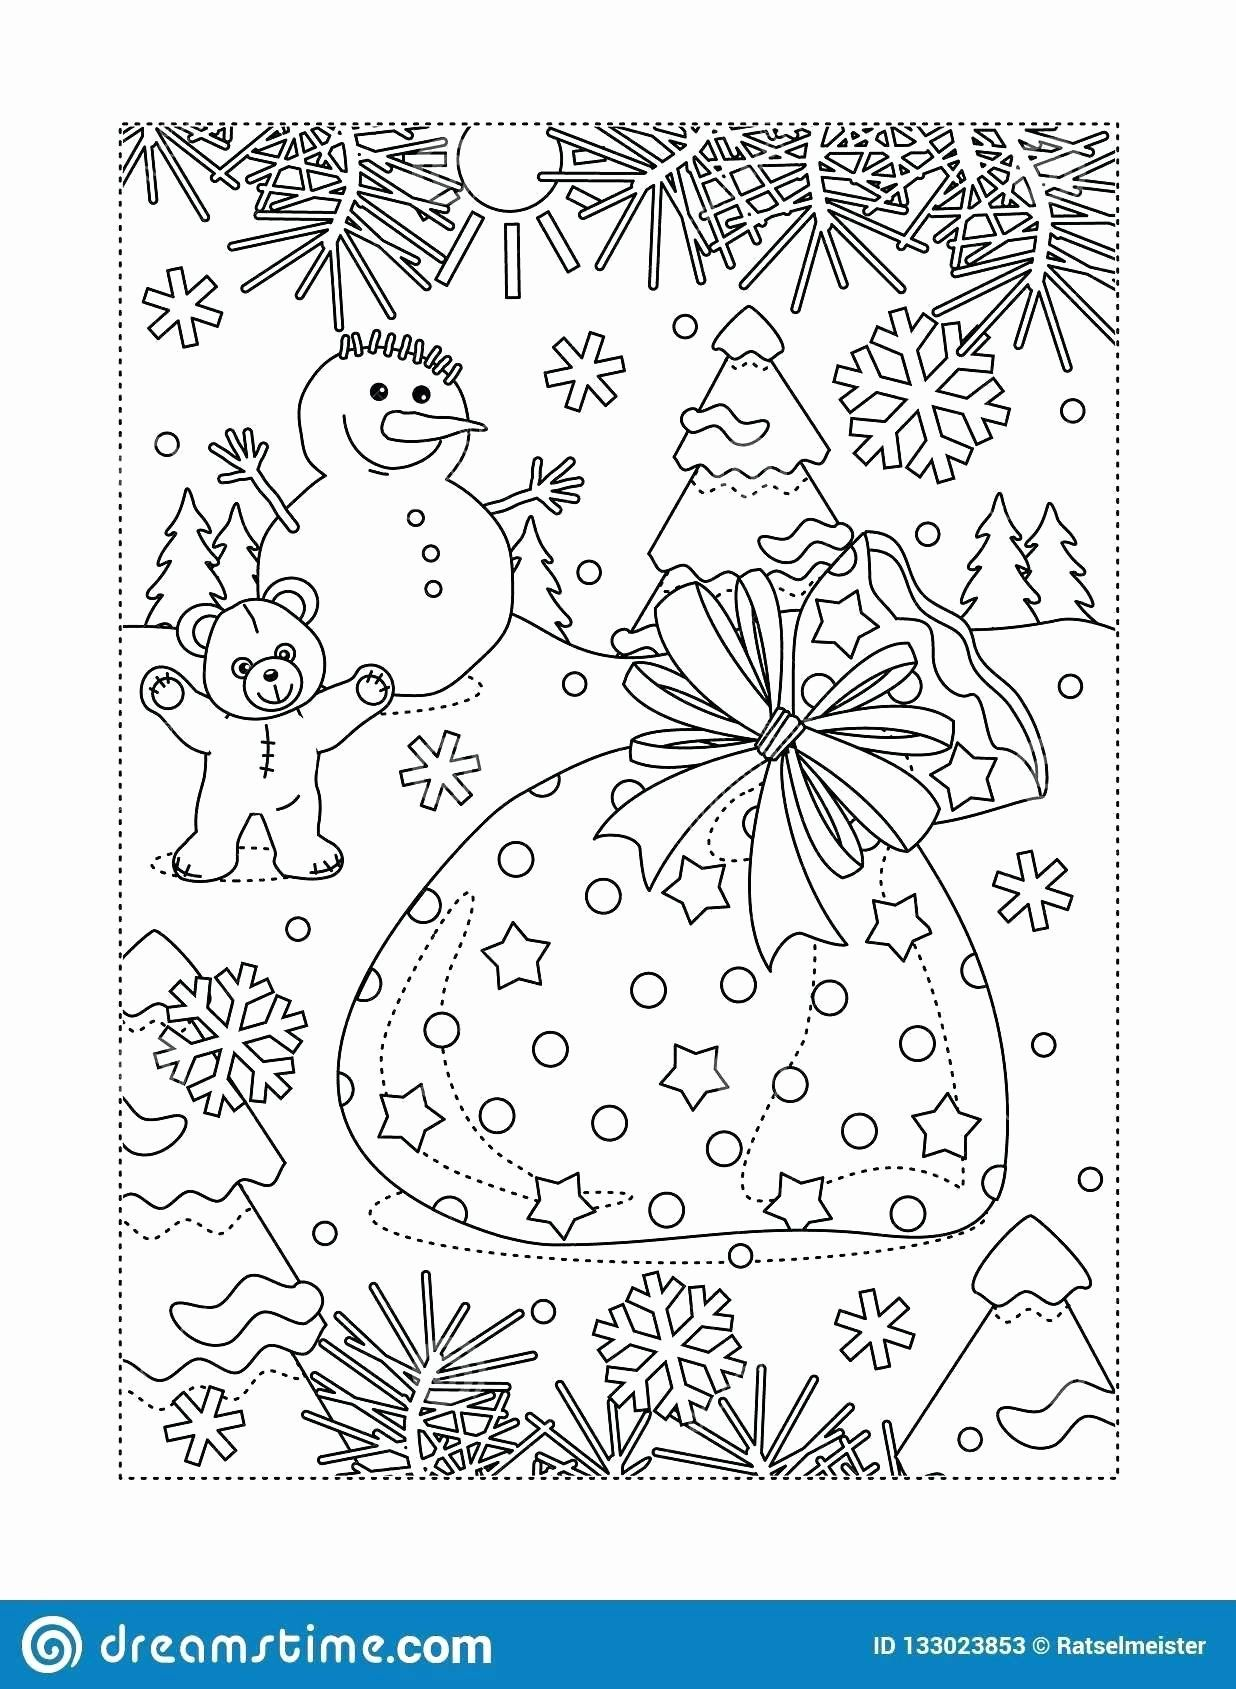 Coloring Pages Outdoor Activities Awesome Printable Winter Holiday Coloring Pages Axials Coloring Pages Winter Holiday Coloring Book Christmas Coloring Books